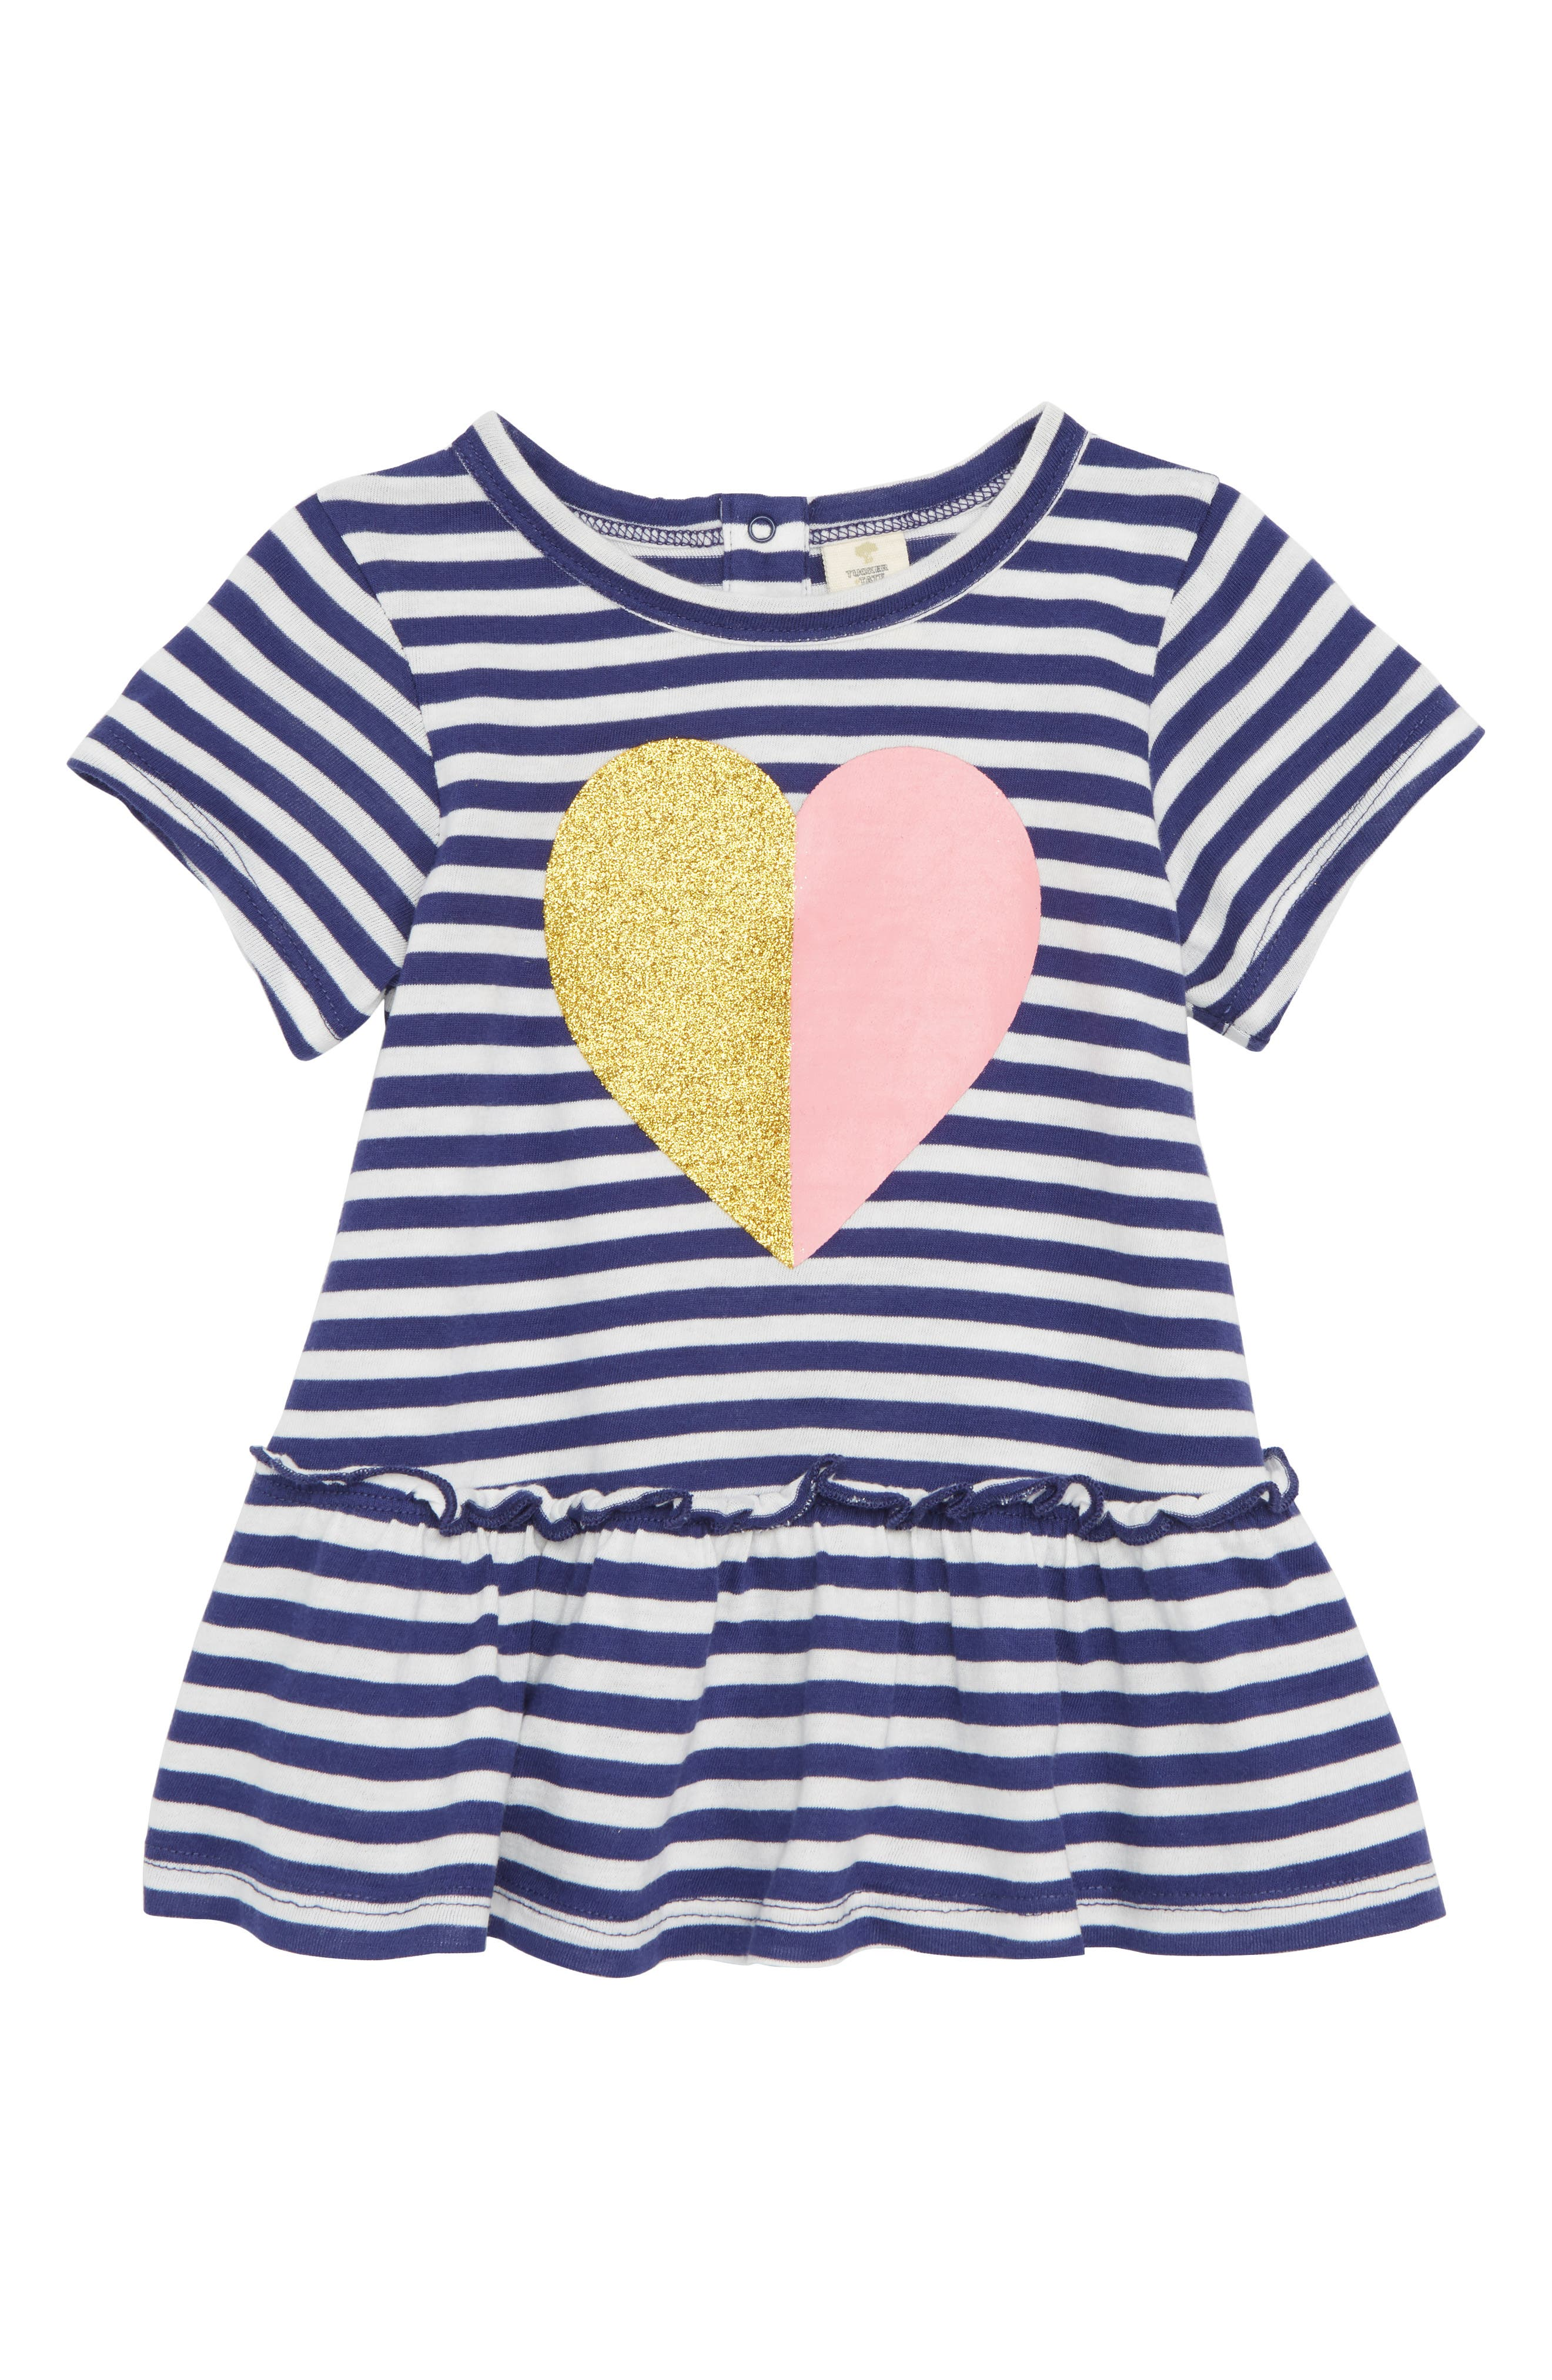 Stripe Peplum Graphic Top,                         Main,                         color, Navy Ribbon Sparkle Heart